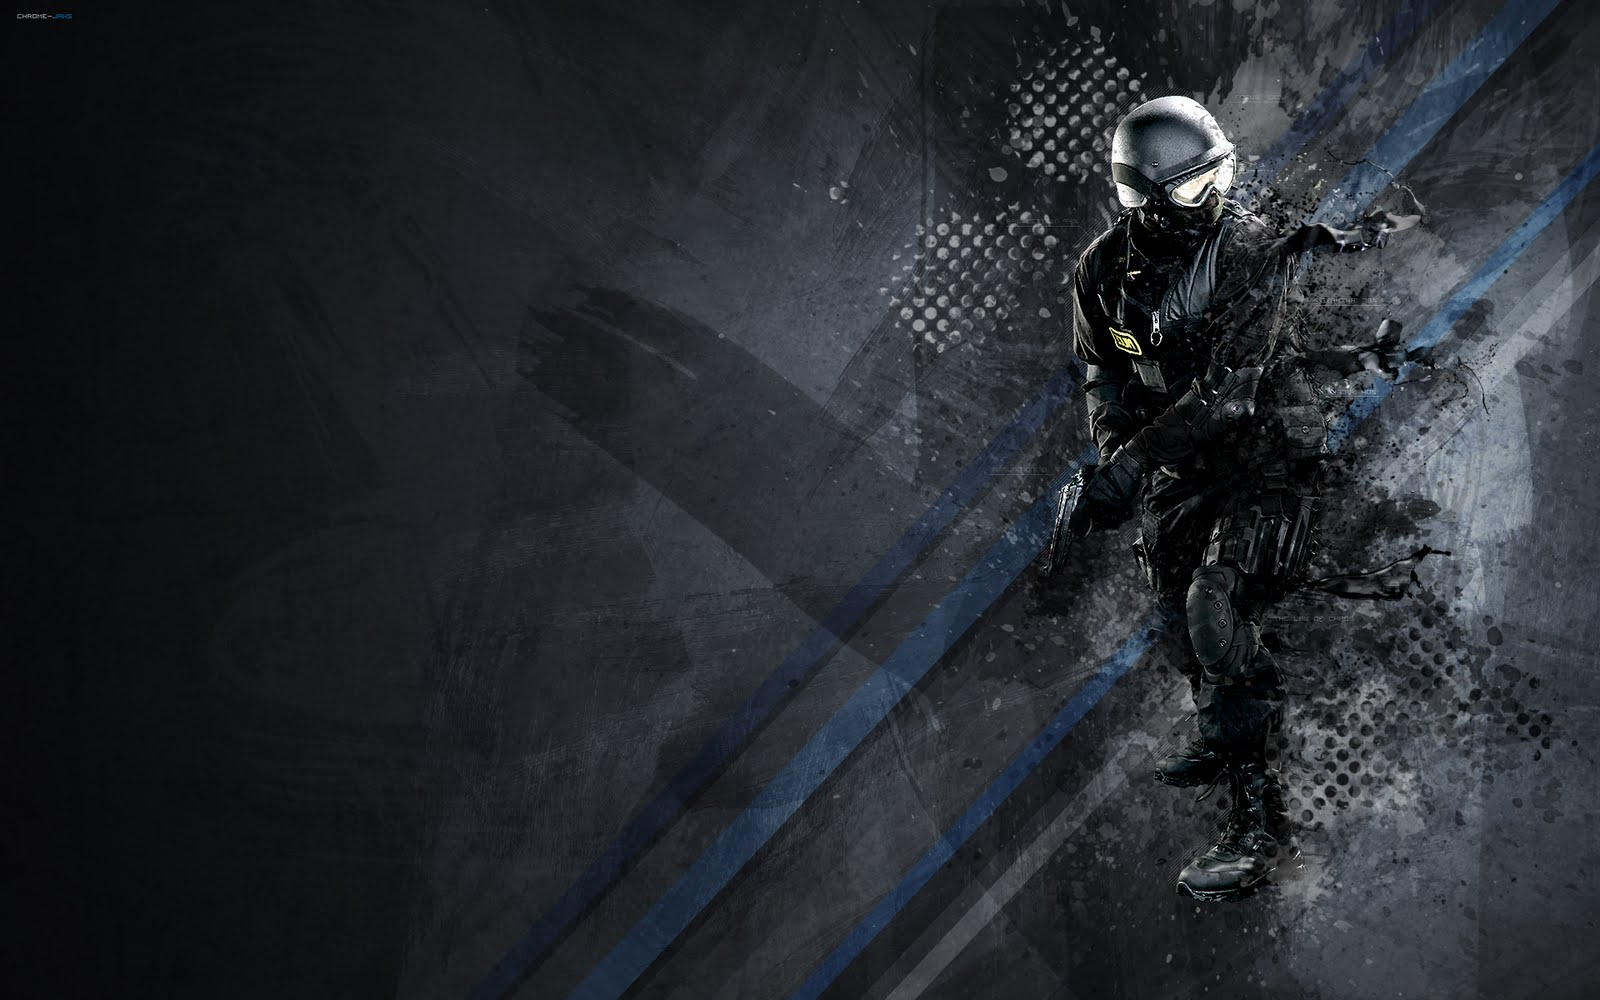 Police Abstract HD Wallpaper - Wallpapers For You | All the best wallpapers